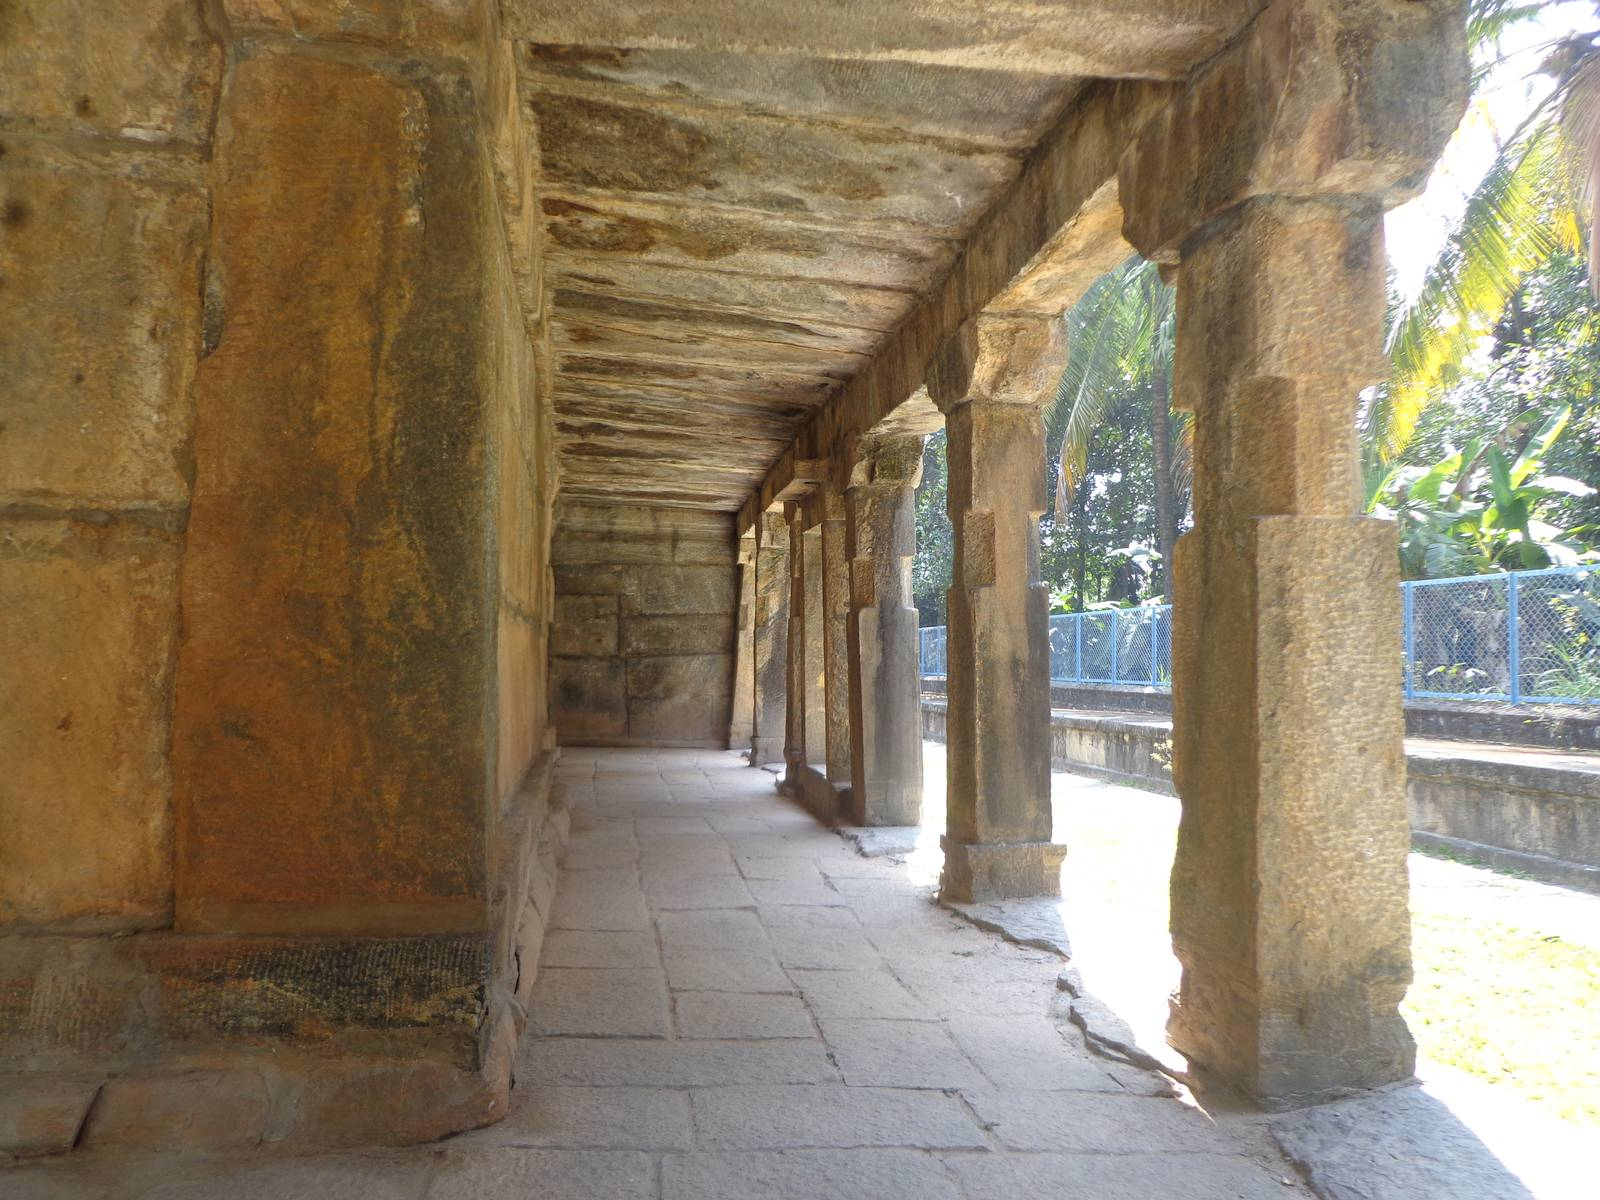 The corridor of the Jain temple